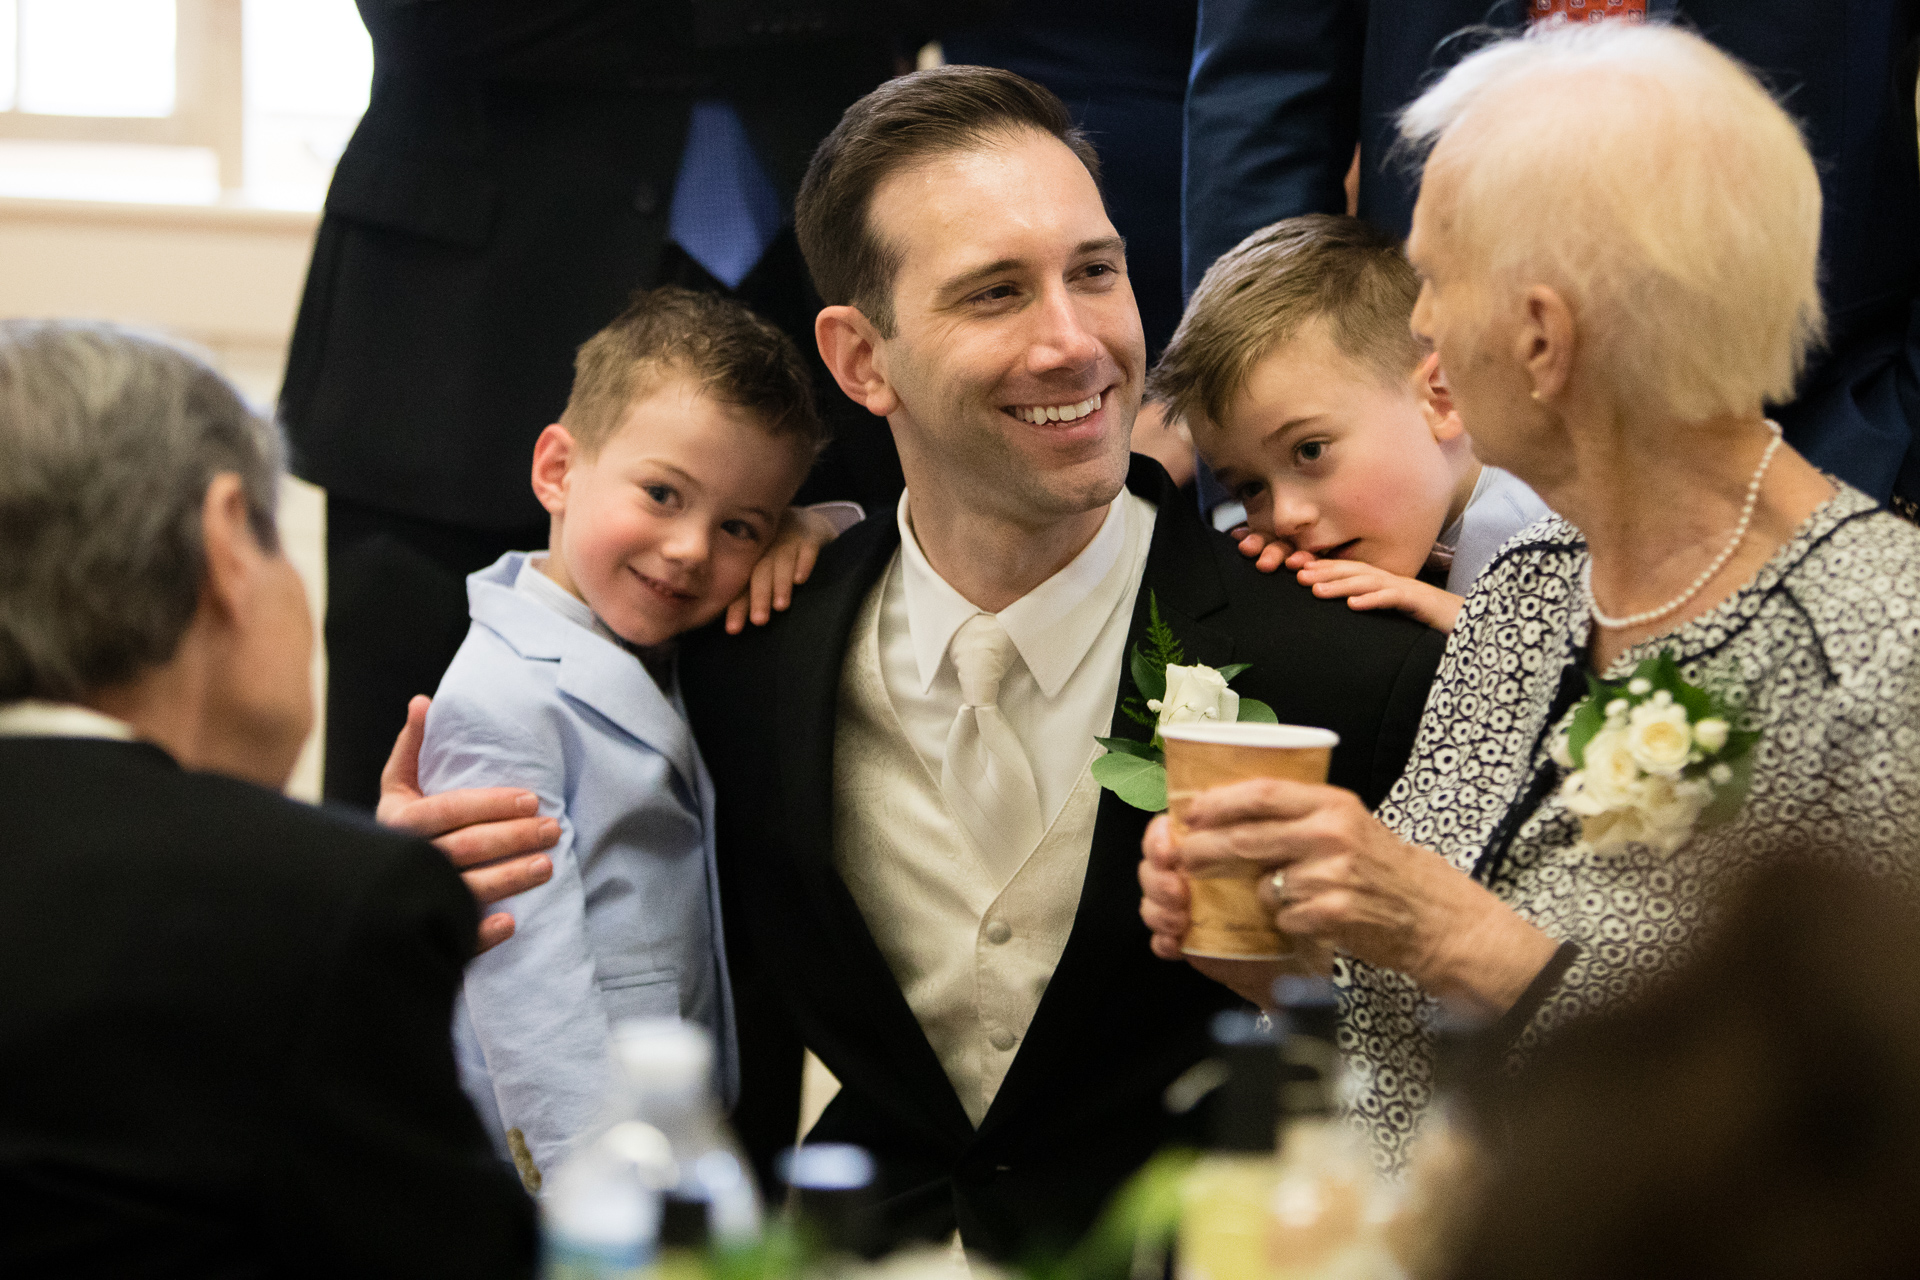 Groom with nephews and grandmother